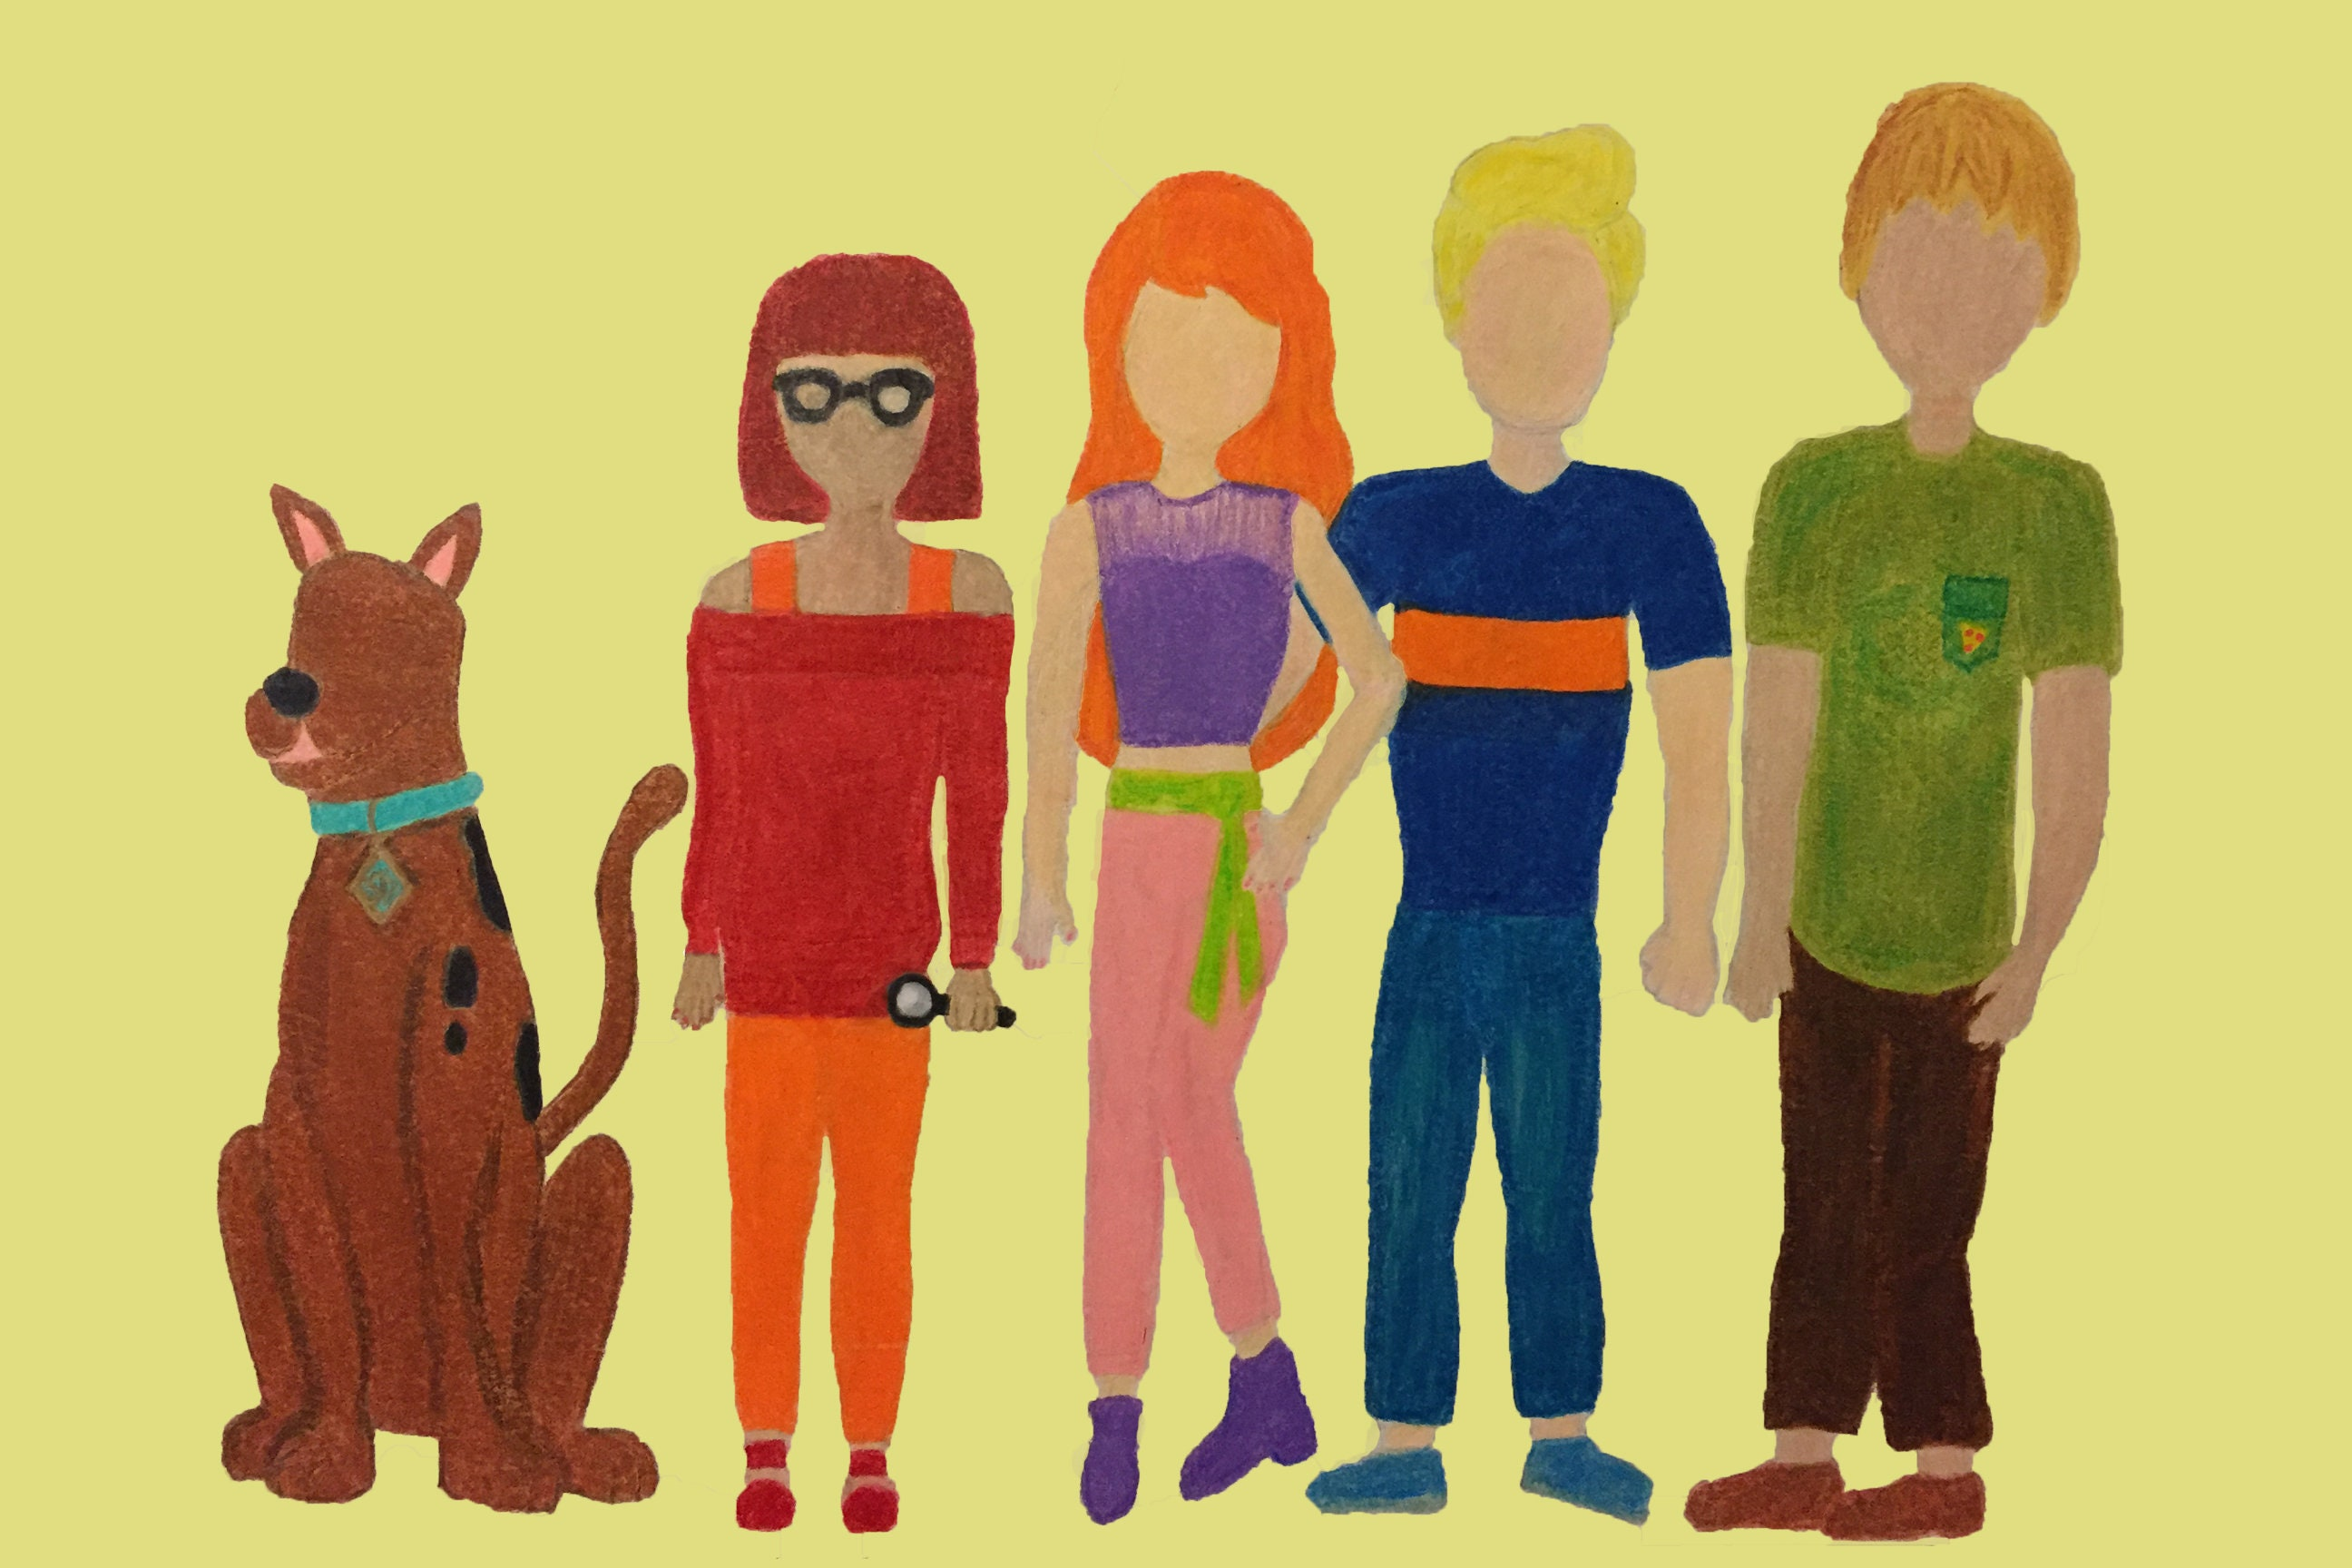 Scooby Doo and the gang in modern clothing Velma Dinkley   Etsy